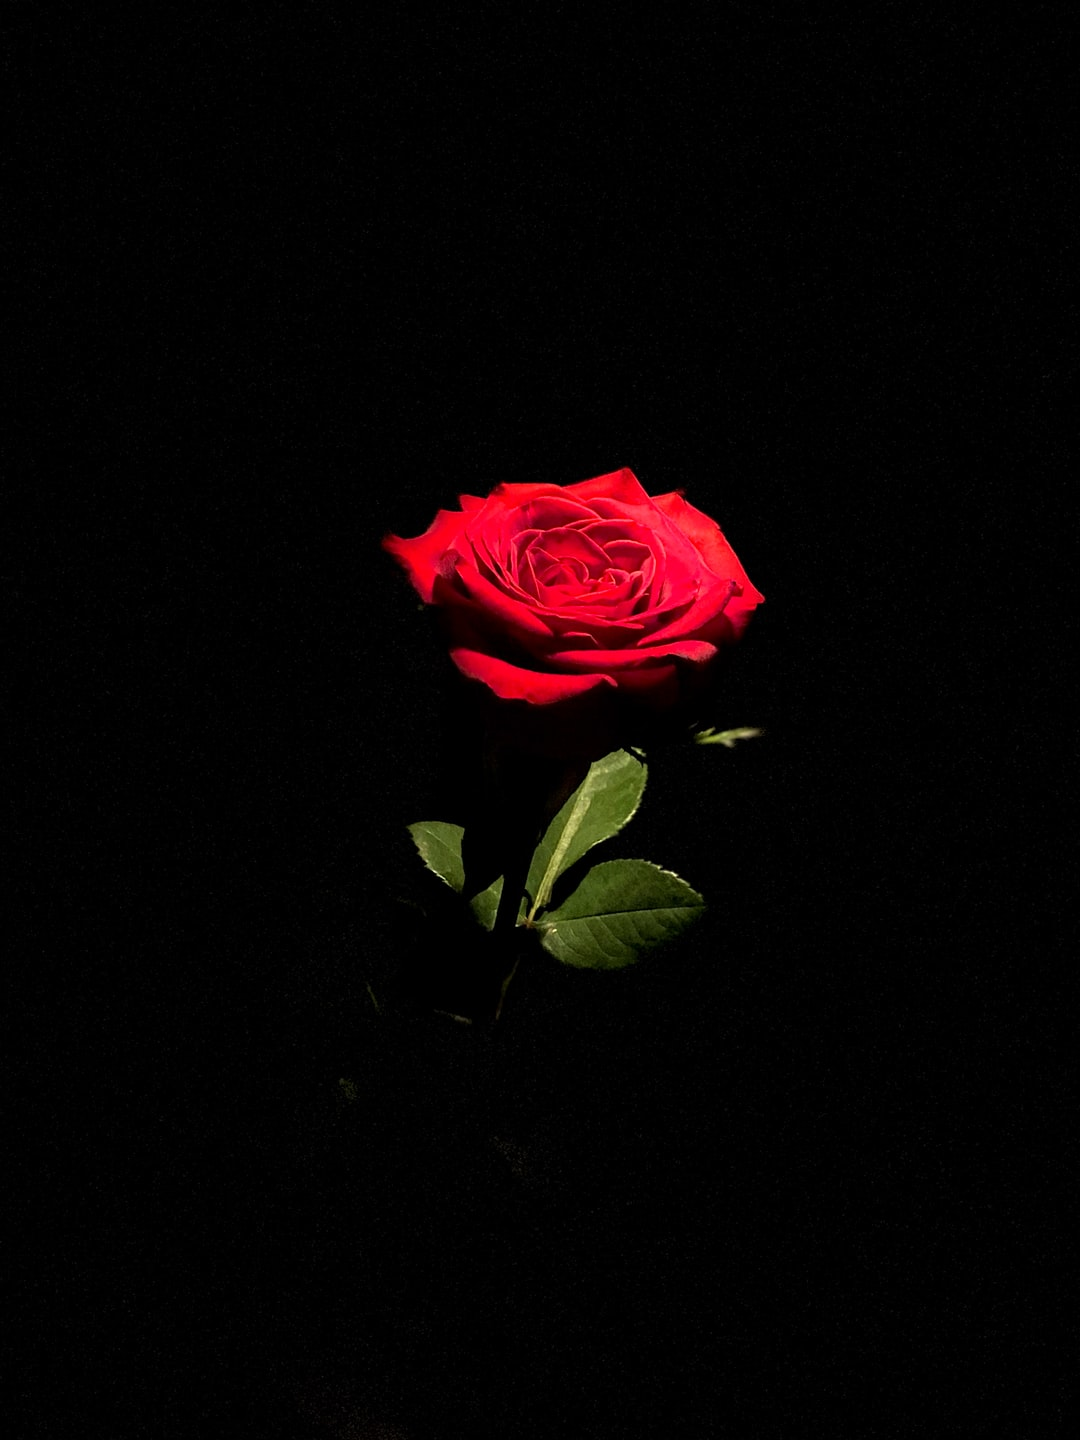 Pink Rose In Bloom With Black Background Photo Free Blossom Image On Unsplash 129,000+ vectors, stock photos & psd files. unsplash